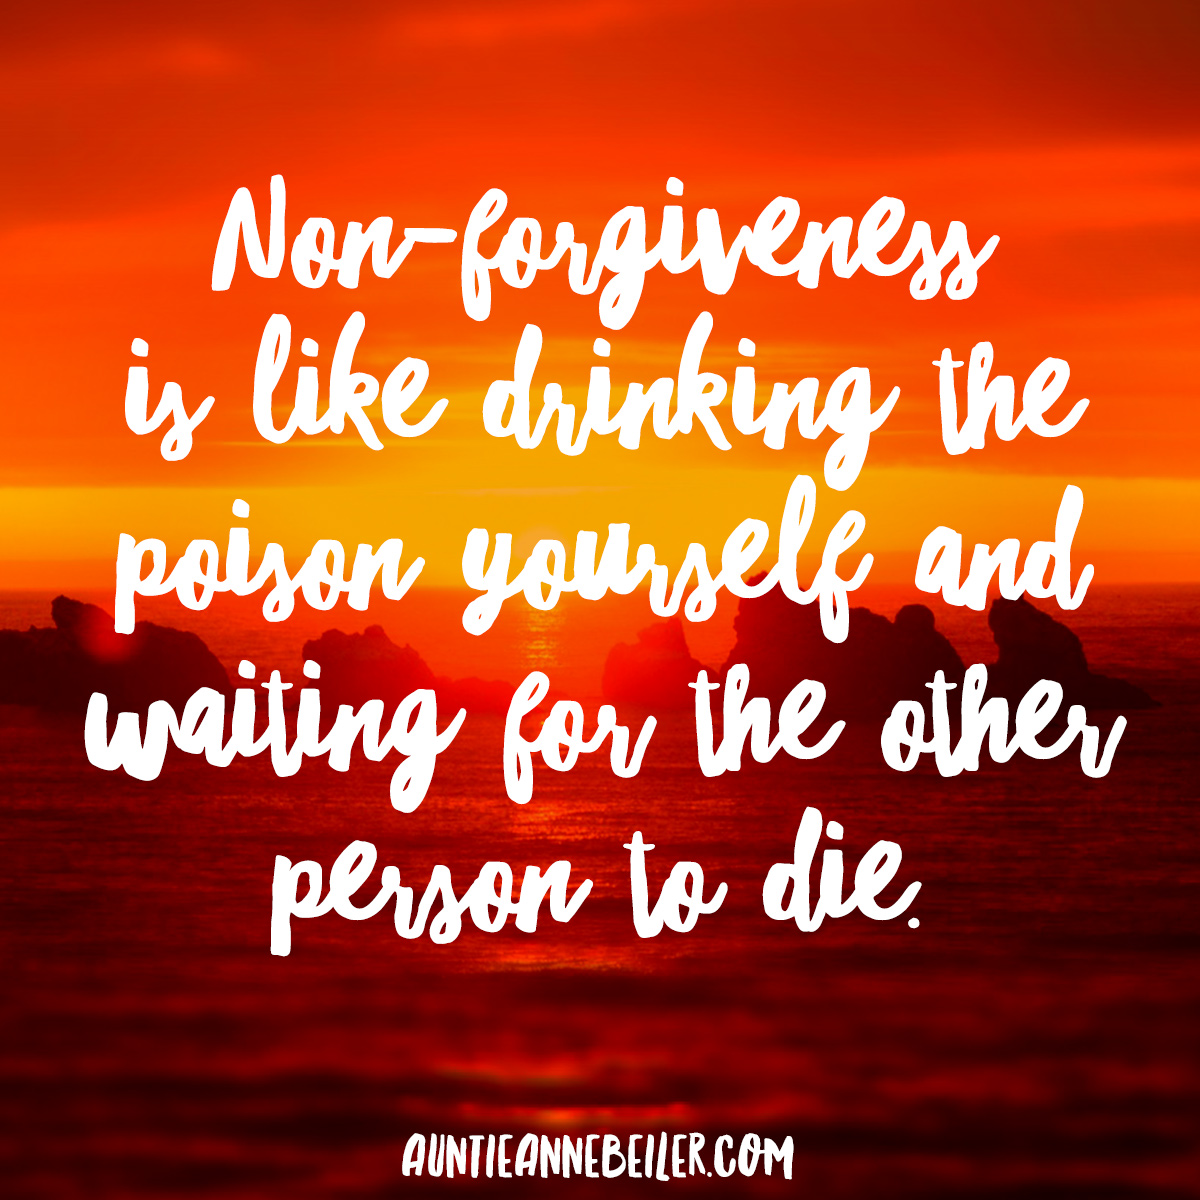 The Poison of Non-Forgiveness